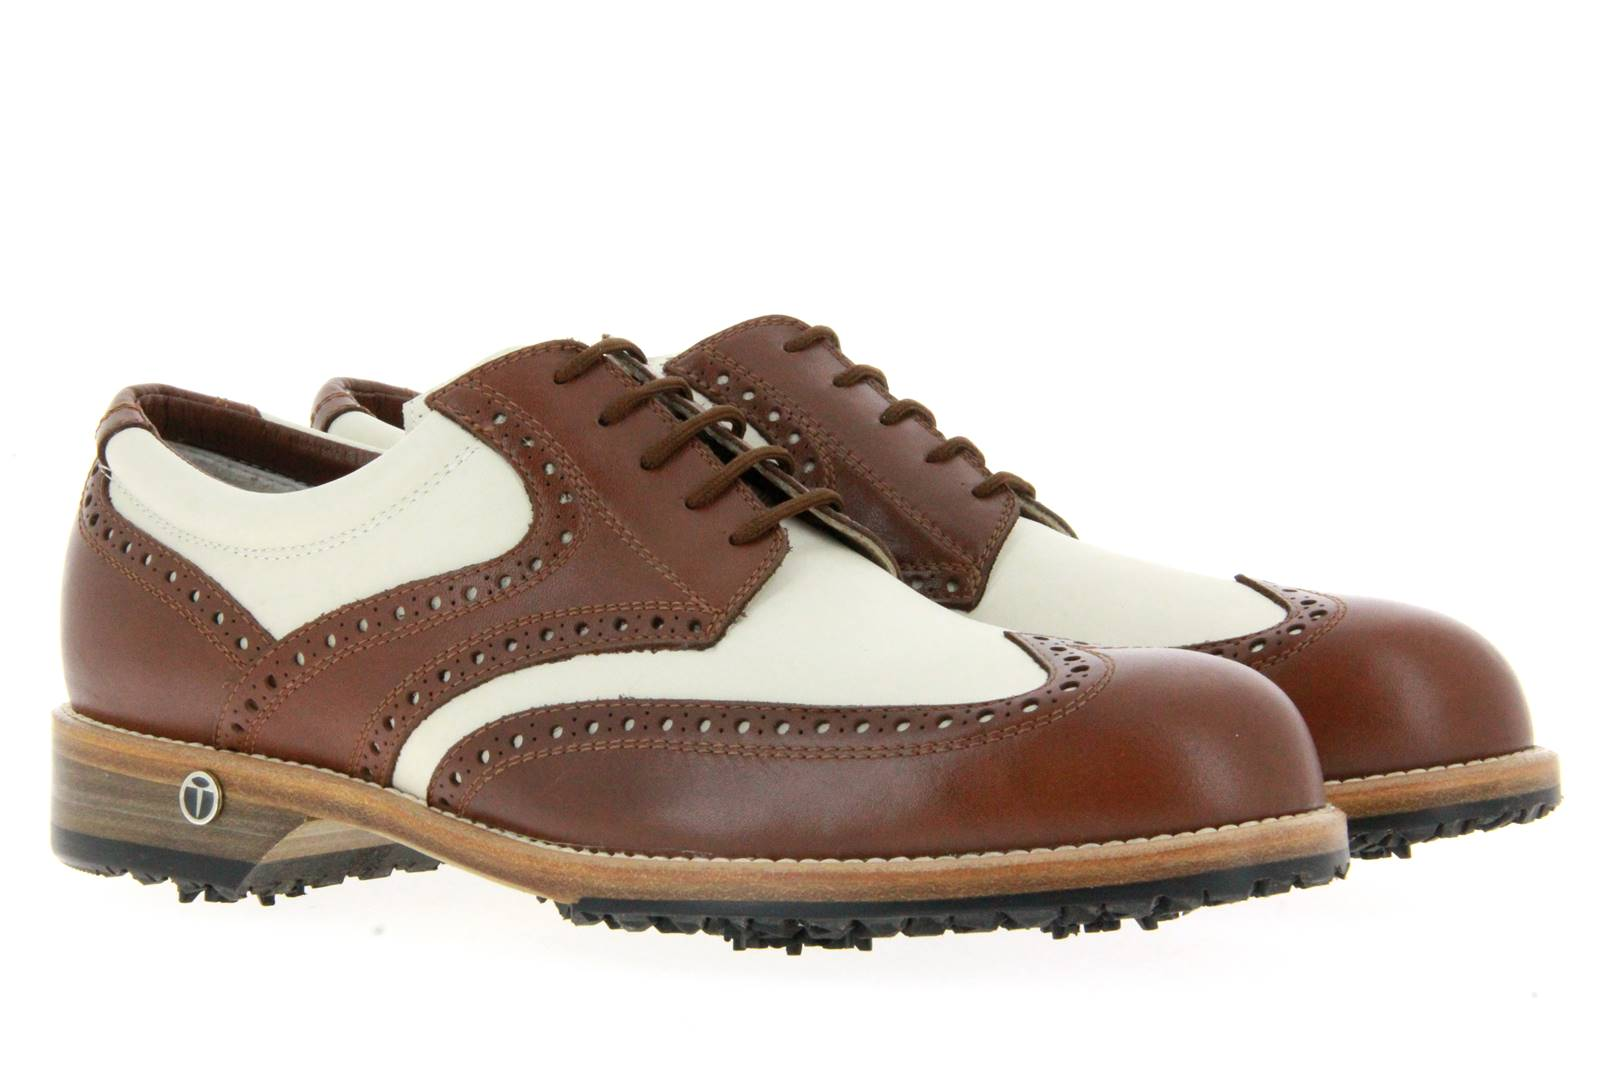 Tee Golf Shoes men's - golf shoe TOMMY BRANDY BEIGE